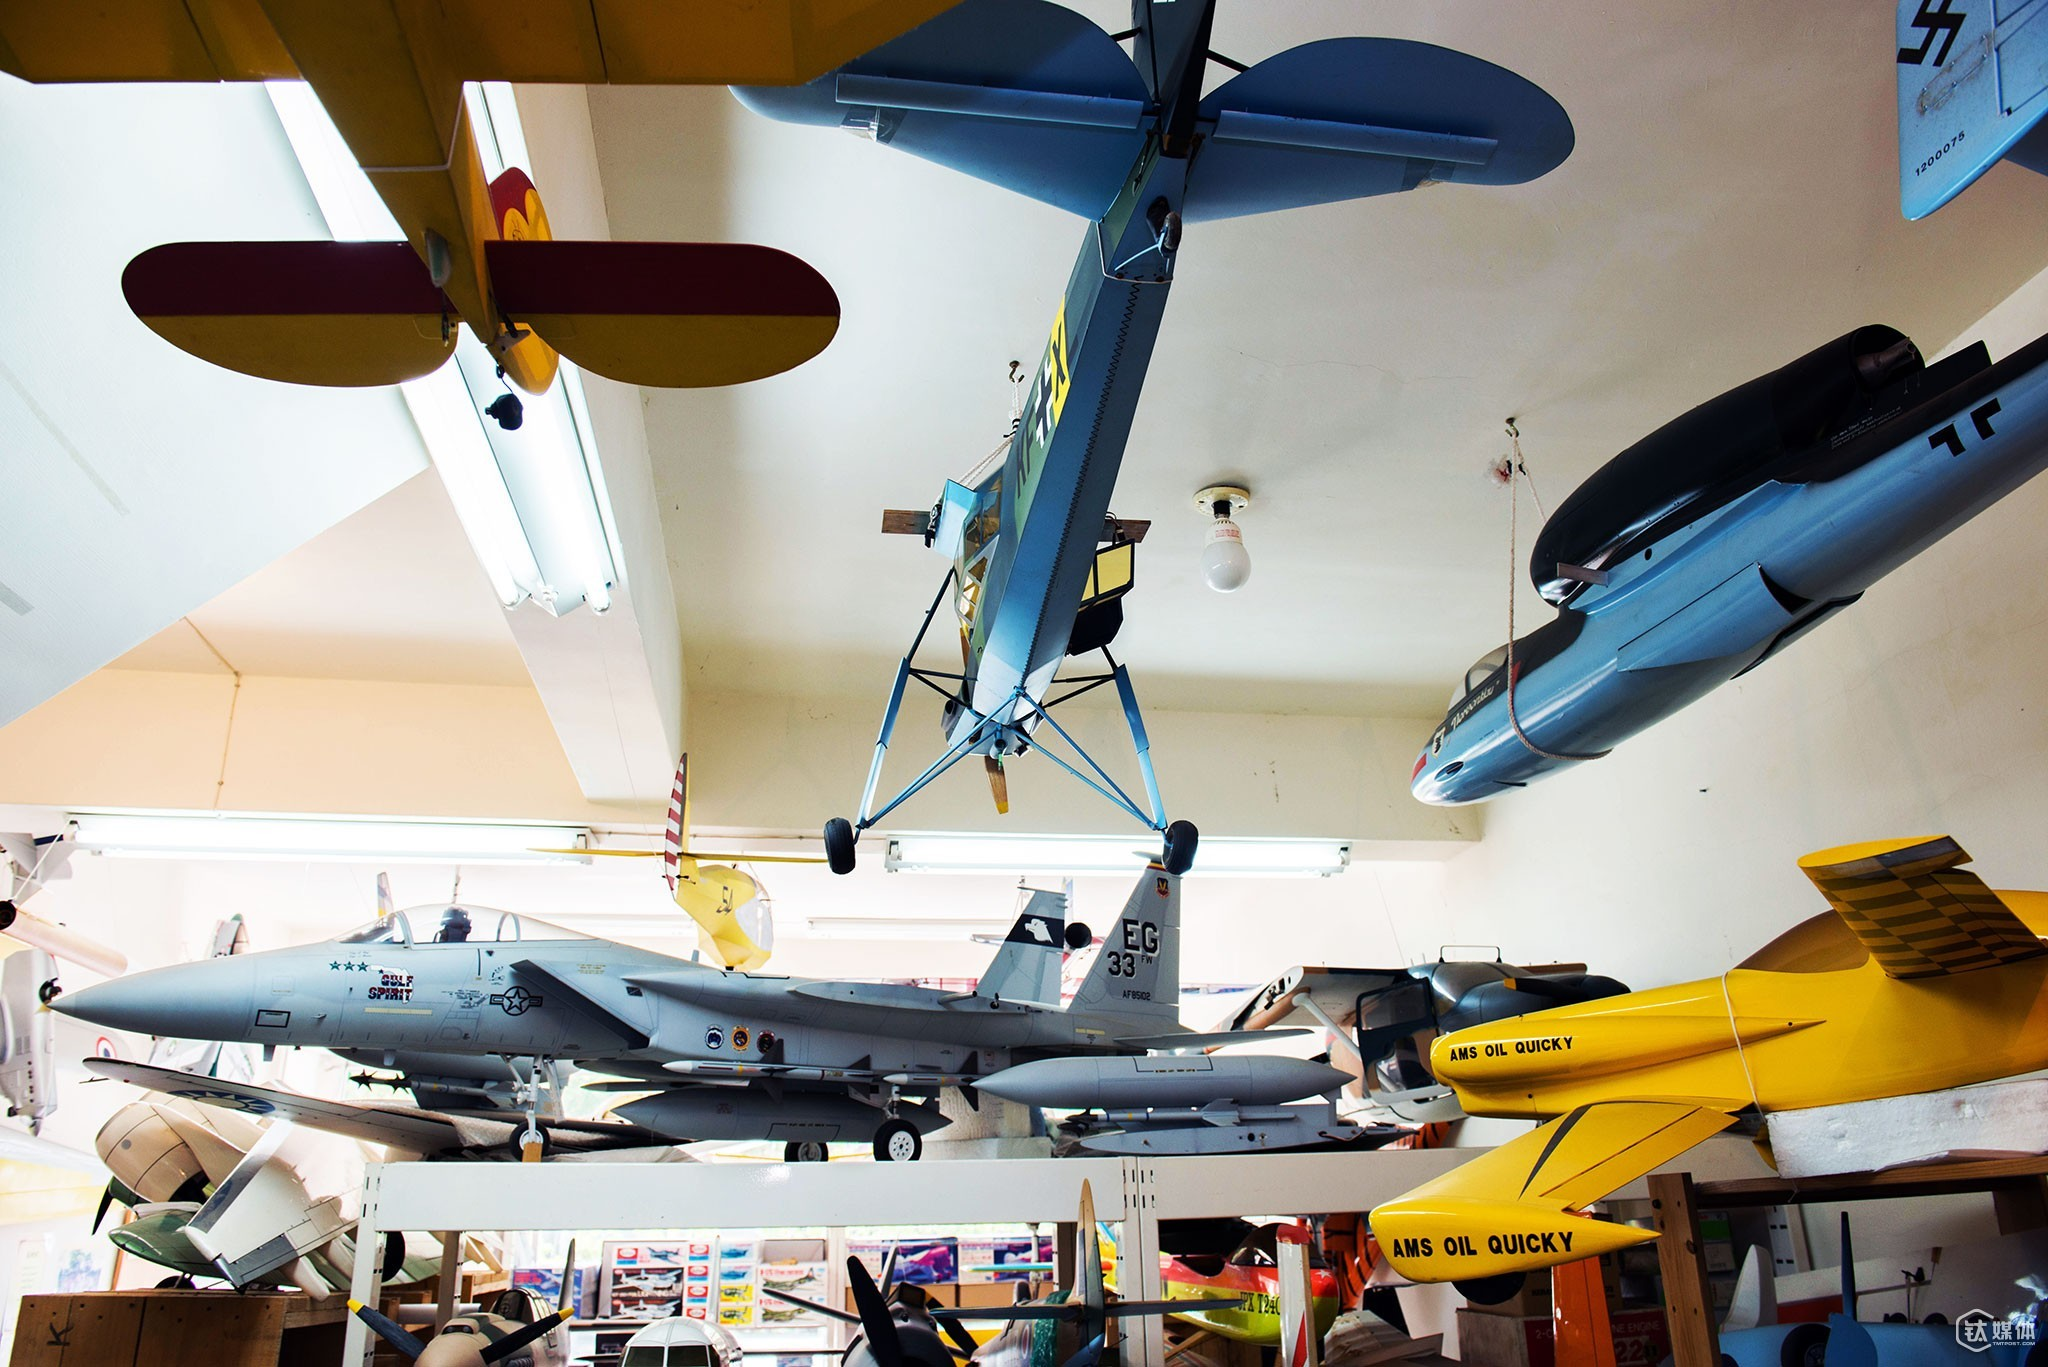 """There are many plane models in Zheng's store in Taiwan, which are made throughout 35 years of his career. On the shelf sat a 6:1 in proportion Mirage jet model. Mirage jets can reach a velocity of 200 km per hour. In his peak time, Zheng even opened a branch next to Taipei's landmark, Taipei 101. However, due to the mass production of airplane models by OEMs and economy's influence, Zheng had to close down his stores and even nearly went broke. During that difficult time, Zheng took all his handmade models back to Taoyuan. """"It could take my dad one month to six months to finish making a model,"""" Zheng's daughter Zheng Ailing said. """"He didn't really care about the cost and he's never like a real businessman. Sometimes if the customers really like the models and didn"""